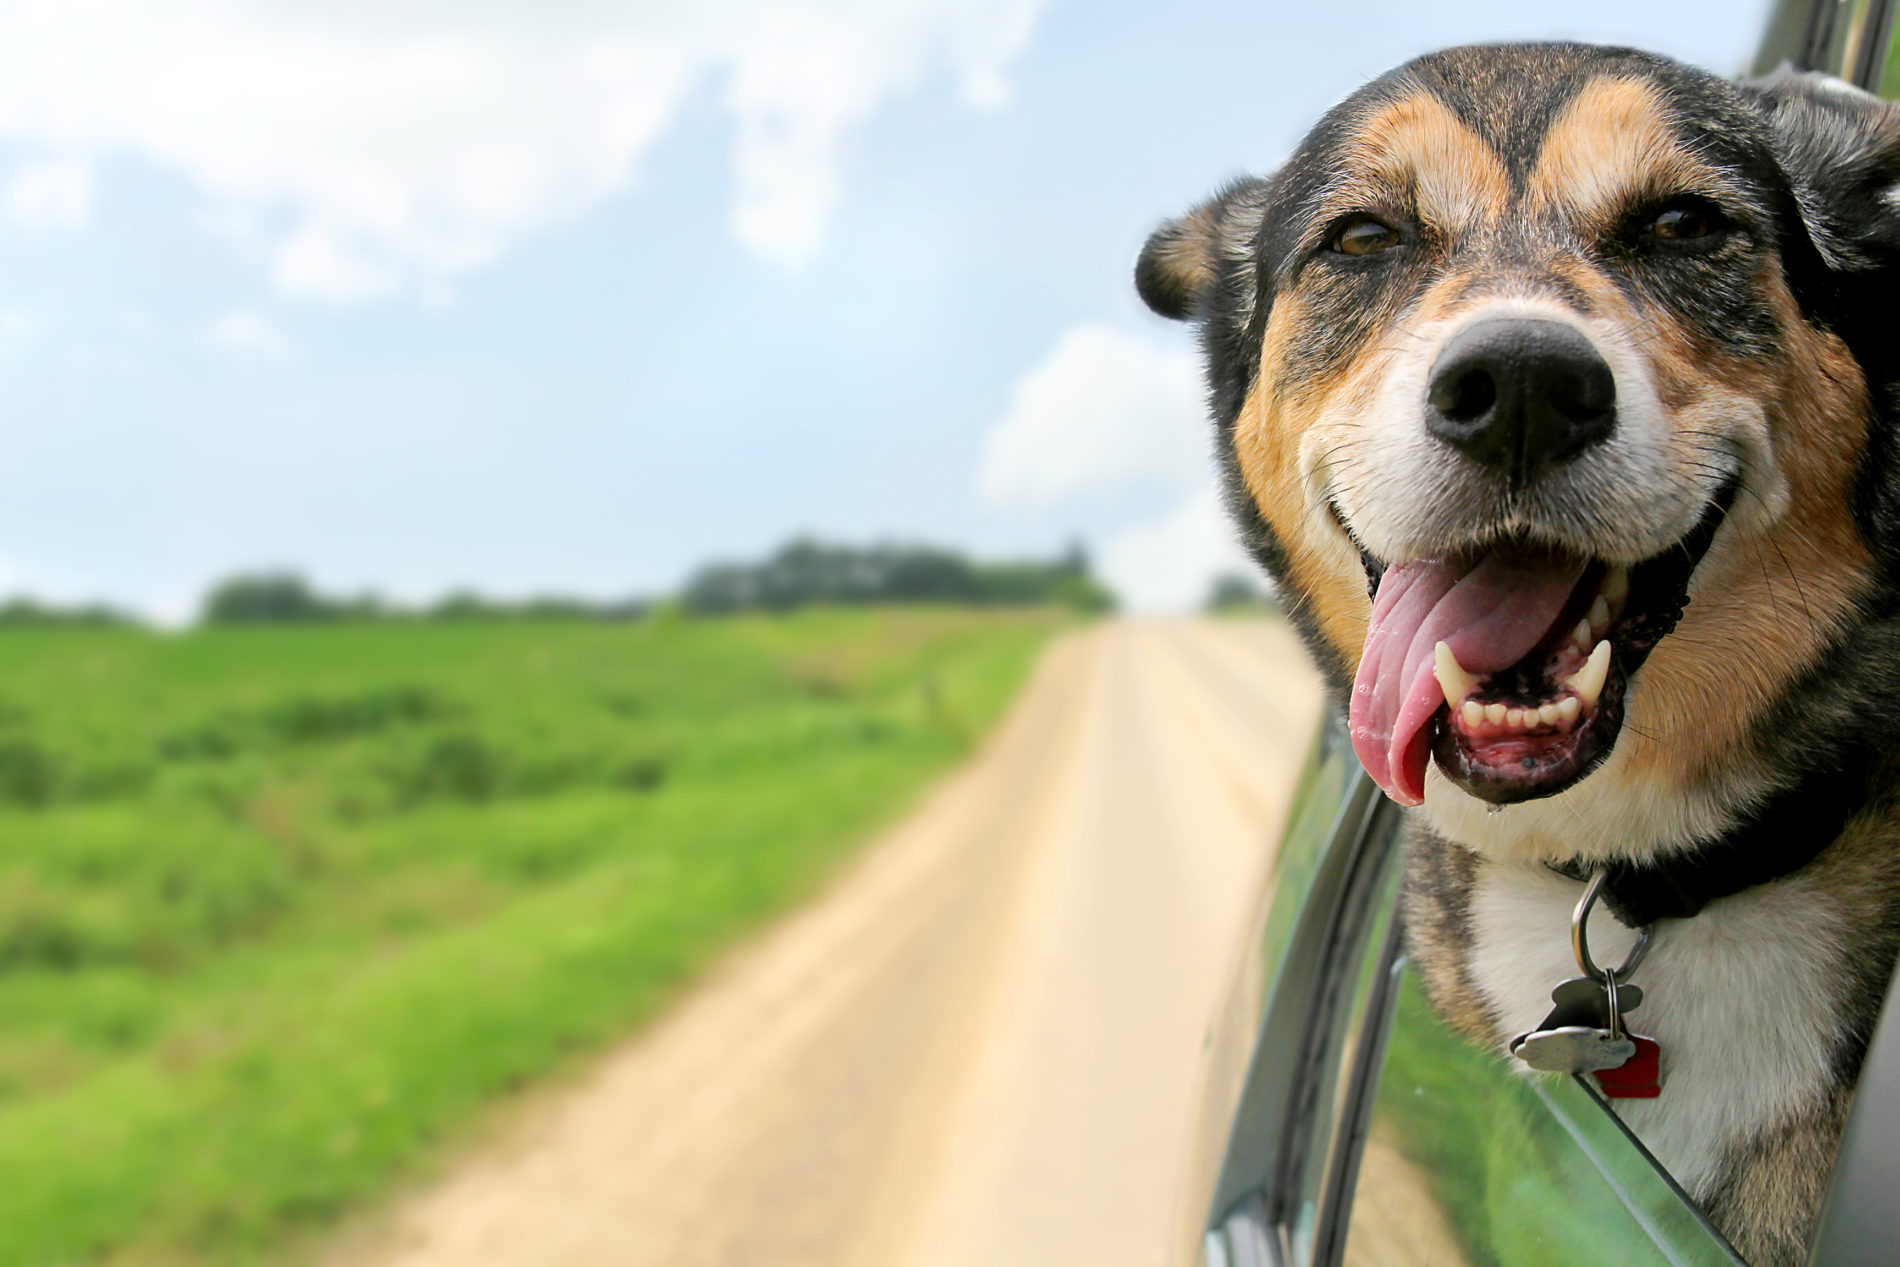 Happy dog hanging out of a car window while being driven down a dirt road beside a green field.